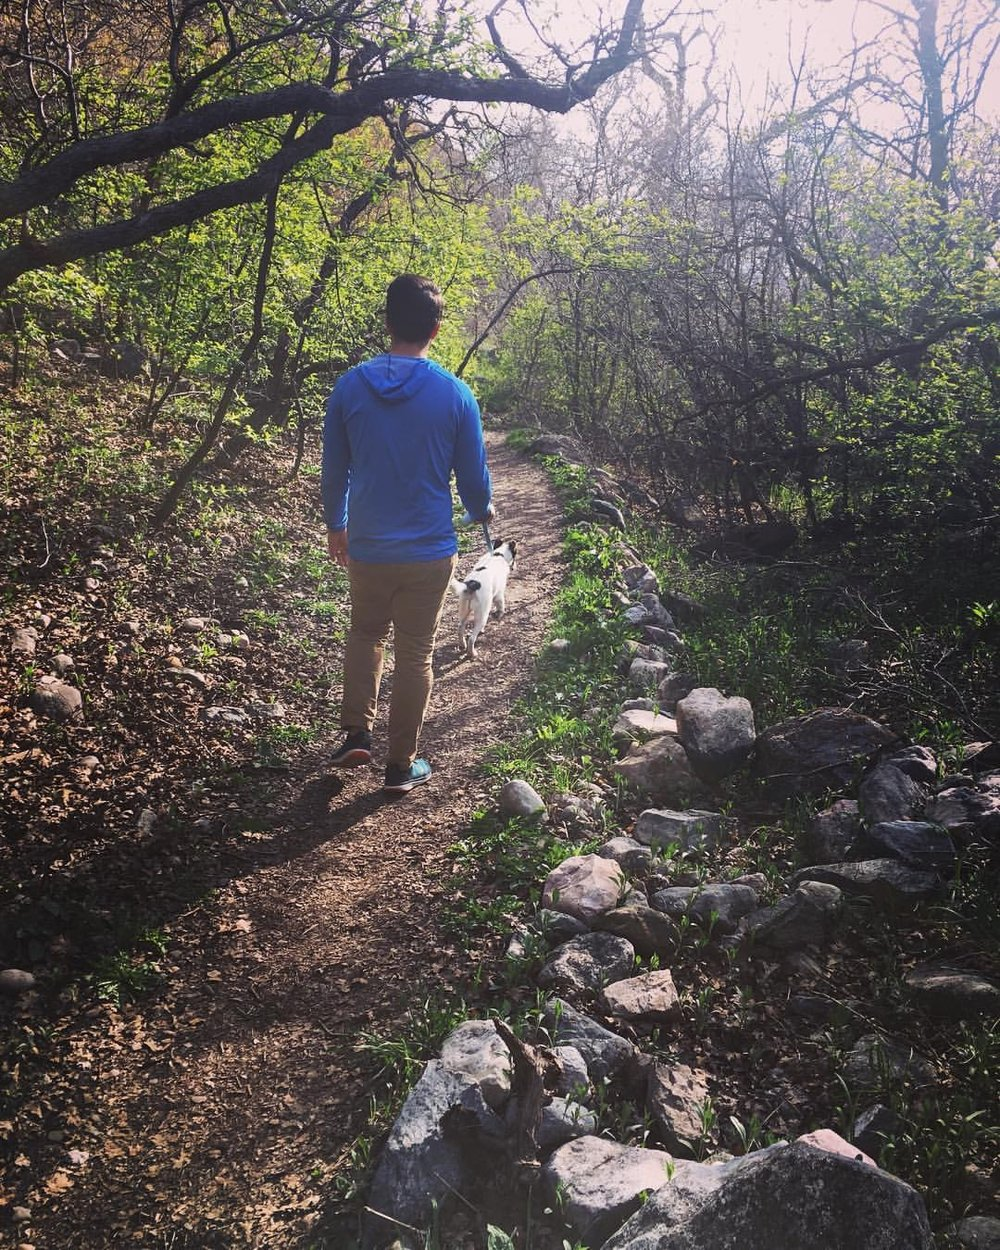 lover of our trails - Hiking our beautiful Ogden trails is on of my favorite things to do!